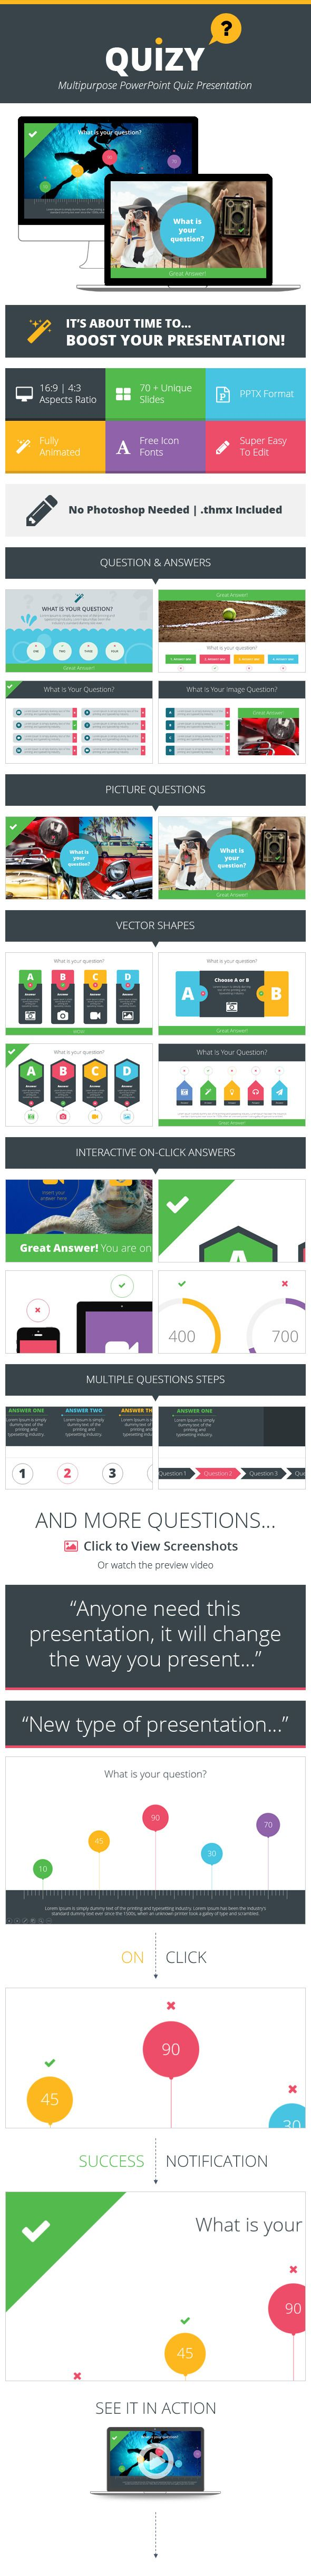 Quizy Multipurpose PowerPoint Quiz Presentation (Powerpoint Templates) image preview